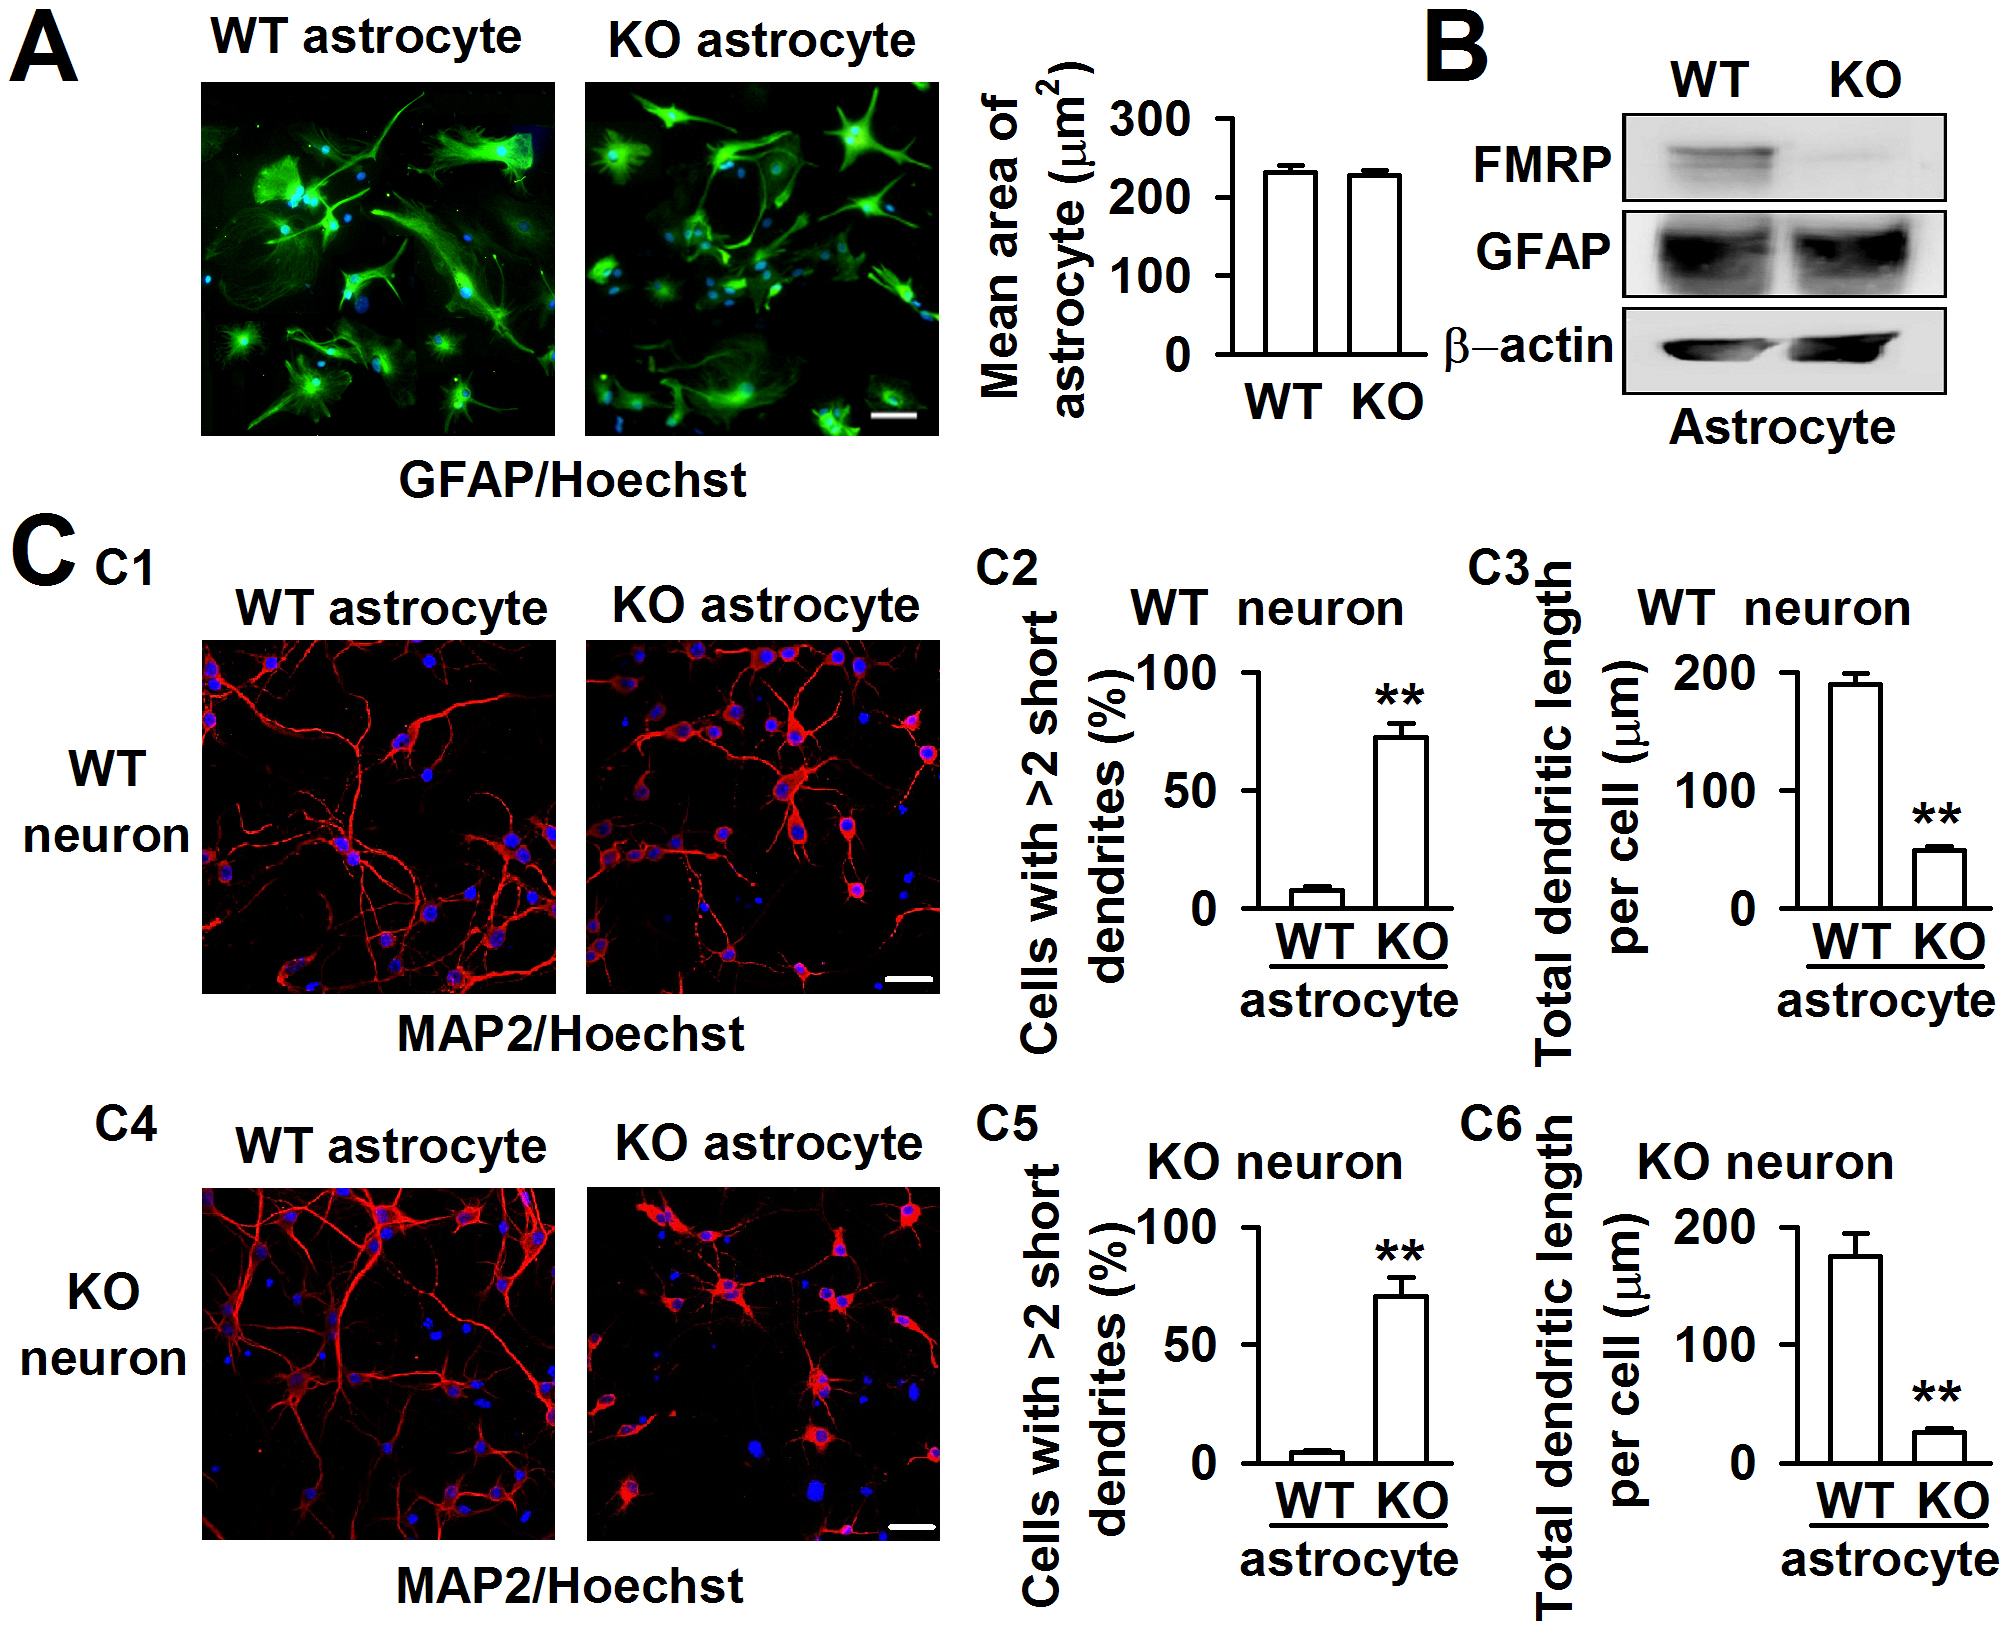 Different dendritic morphology of cortical neurons cocultured with WT and KO astrocytes.